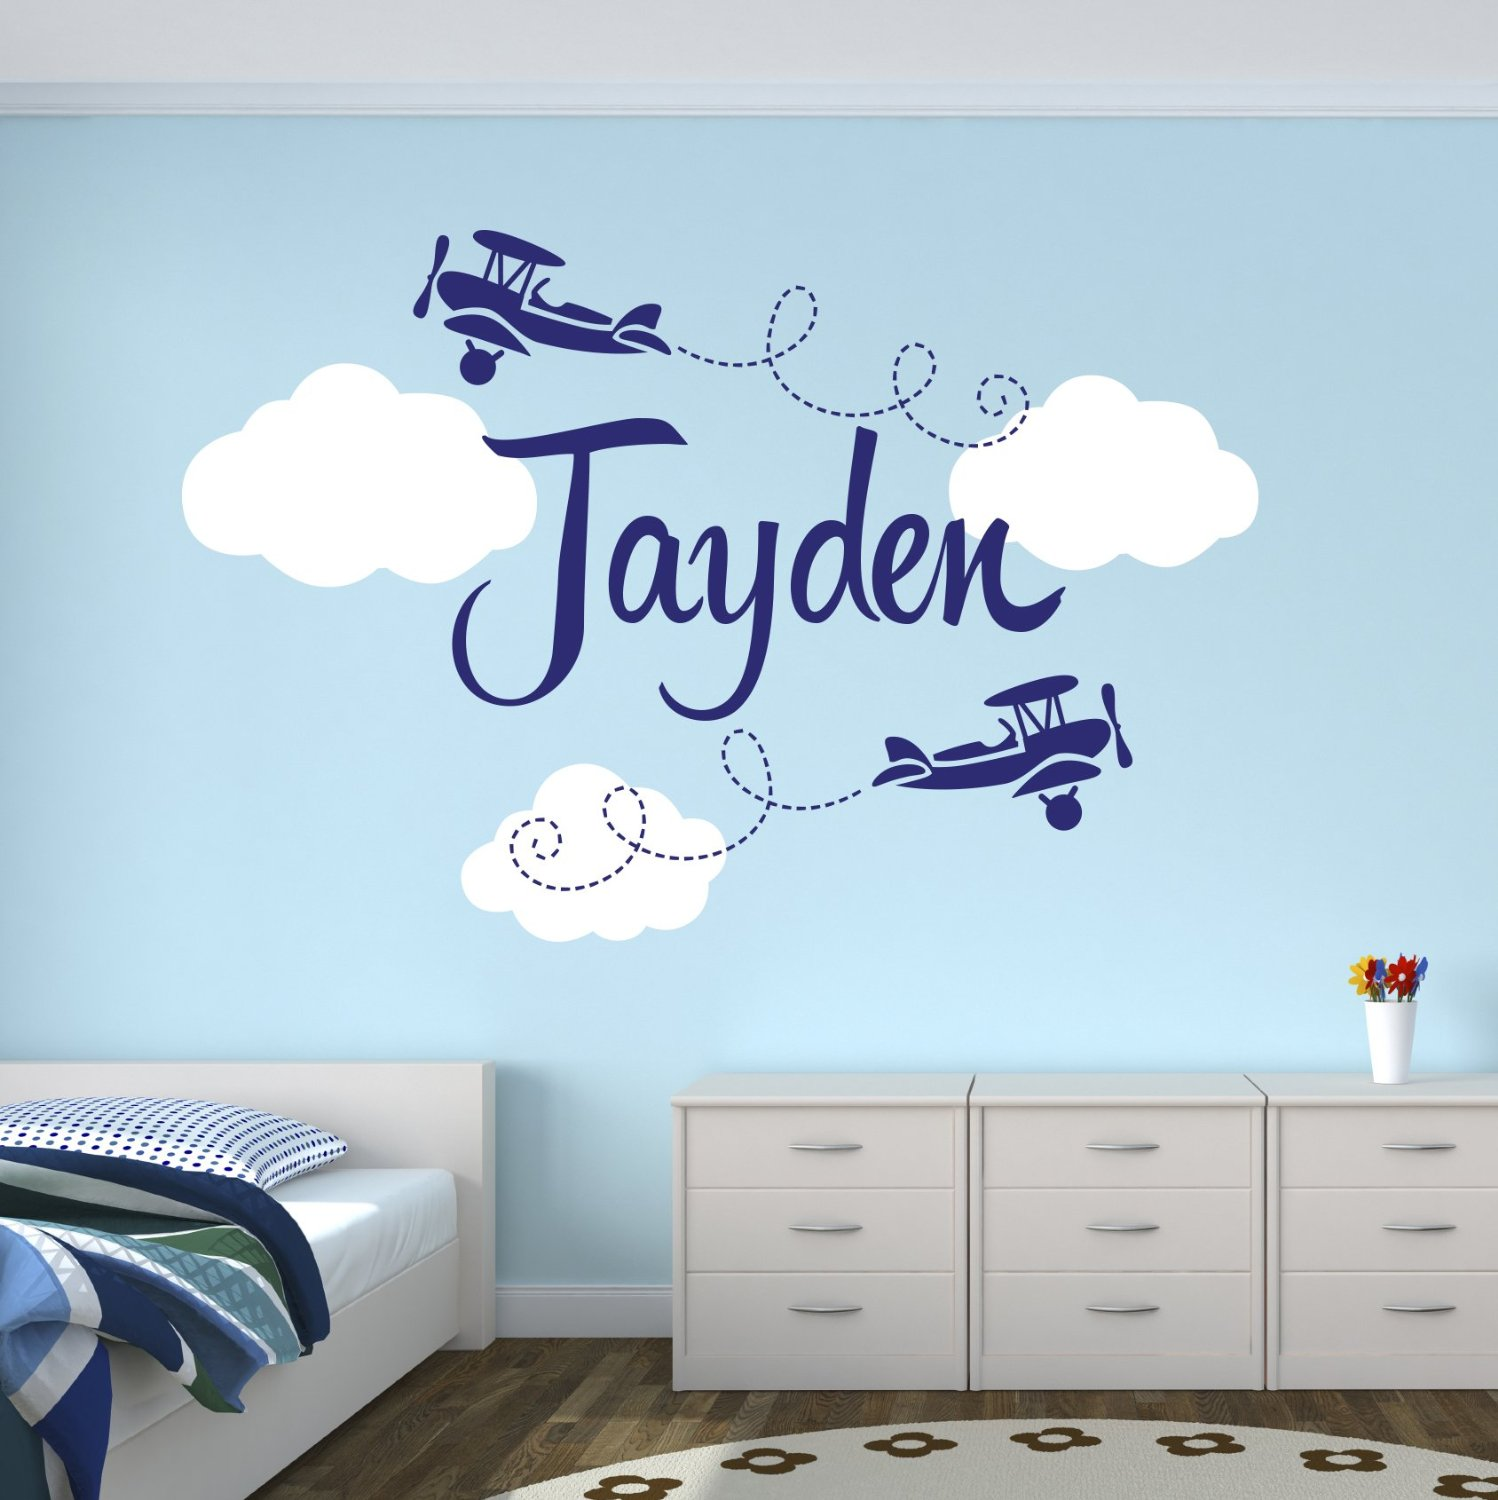 Personalized Bedroom Decor Compare Prices On Personalized Room Decor Online Shopping Buy Low